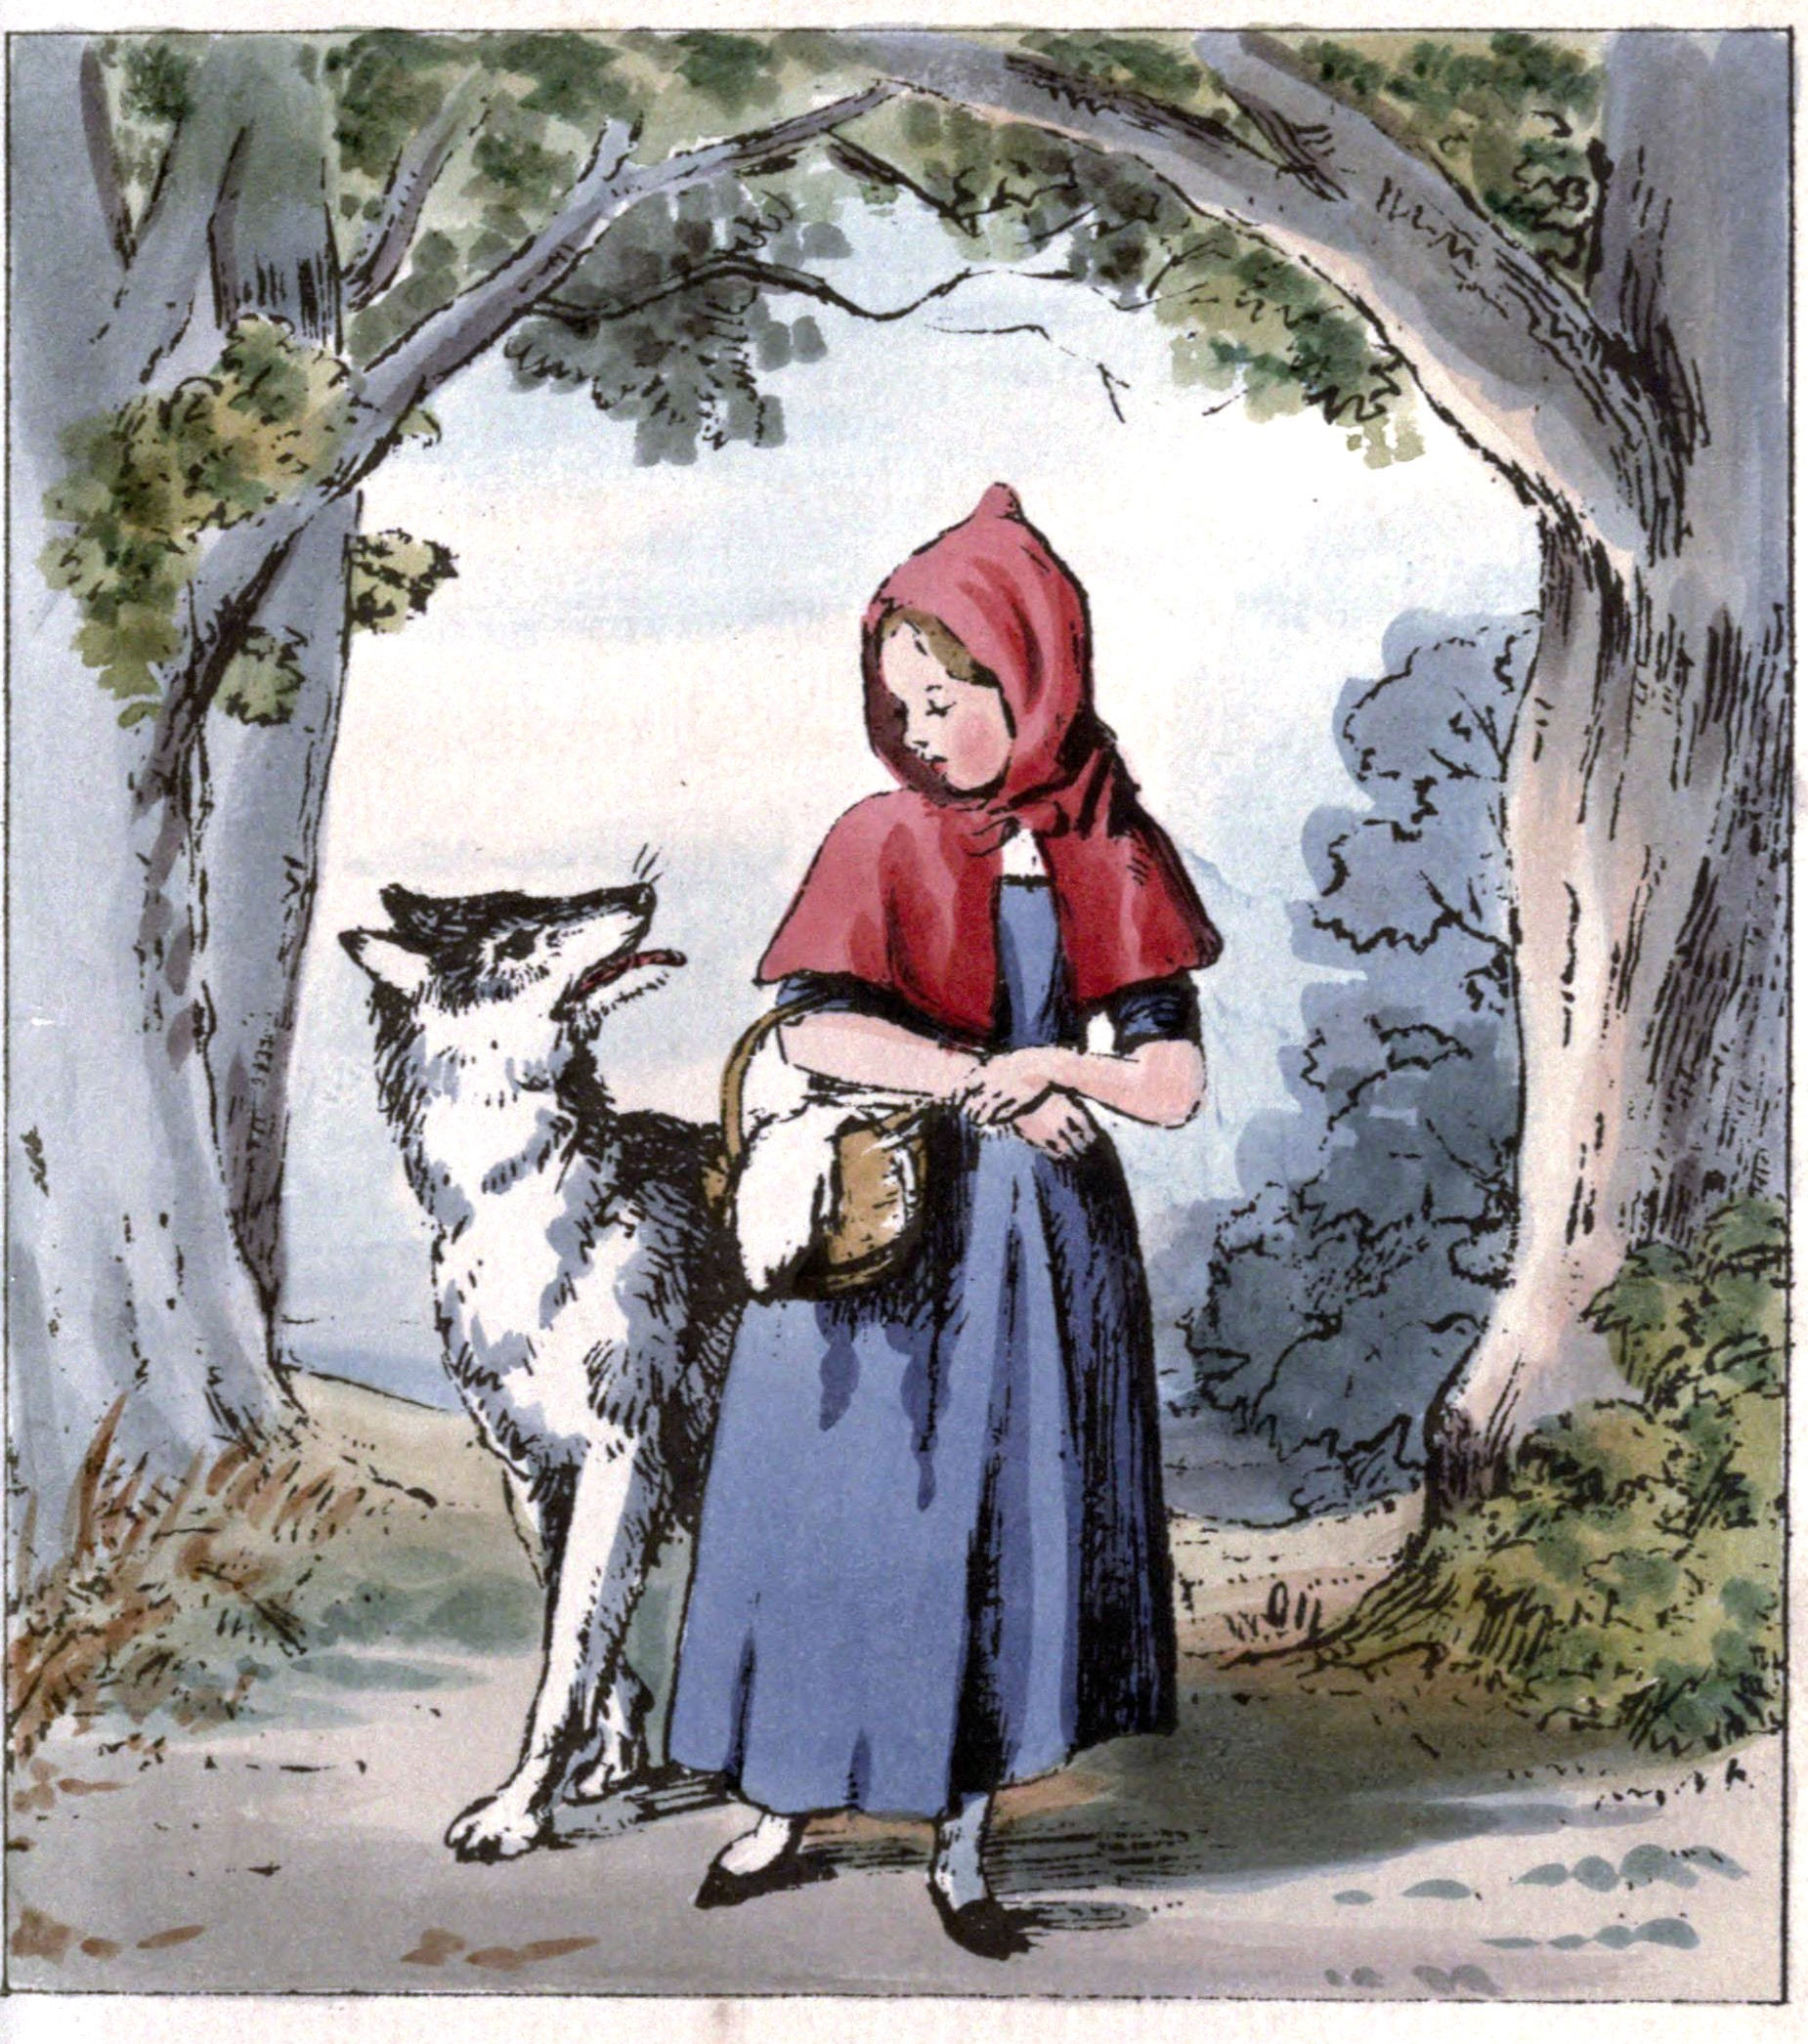 Meet and fuck red riding hood